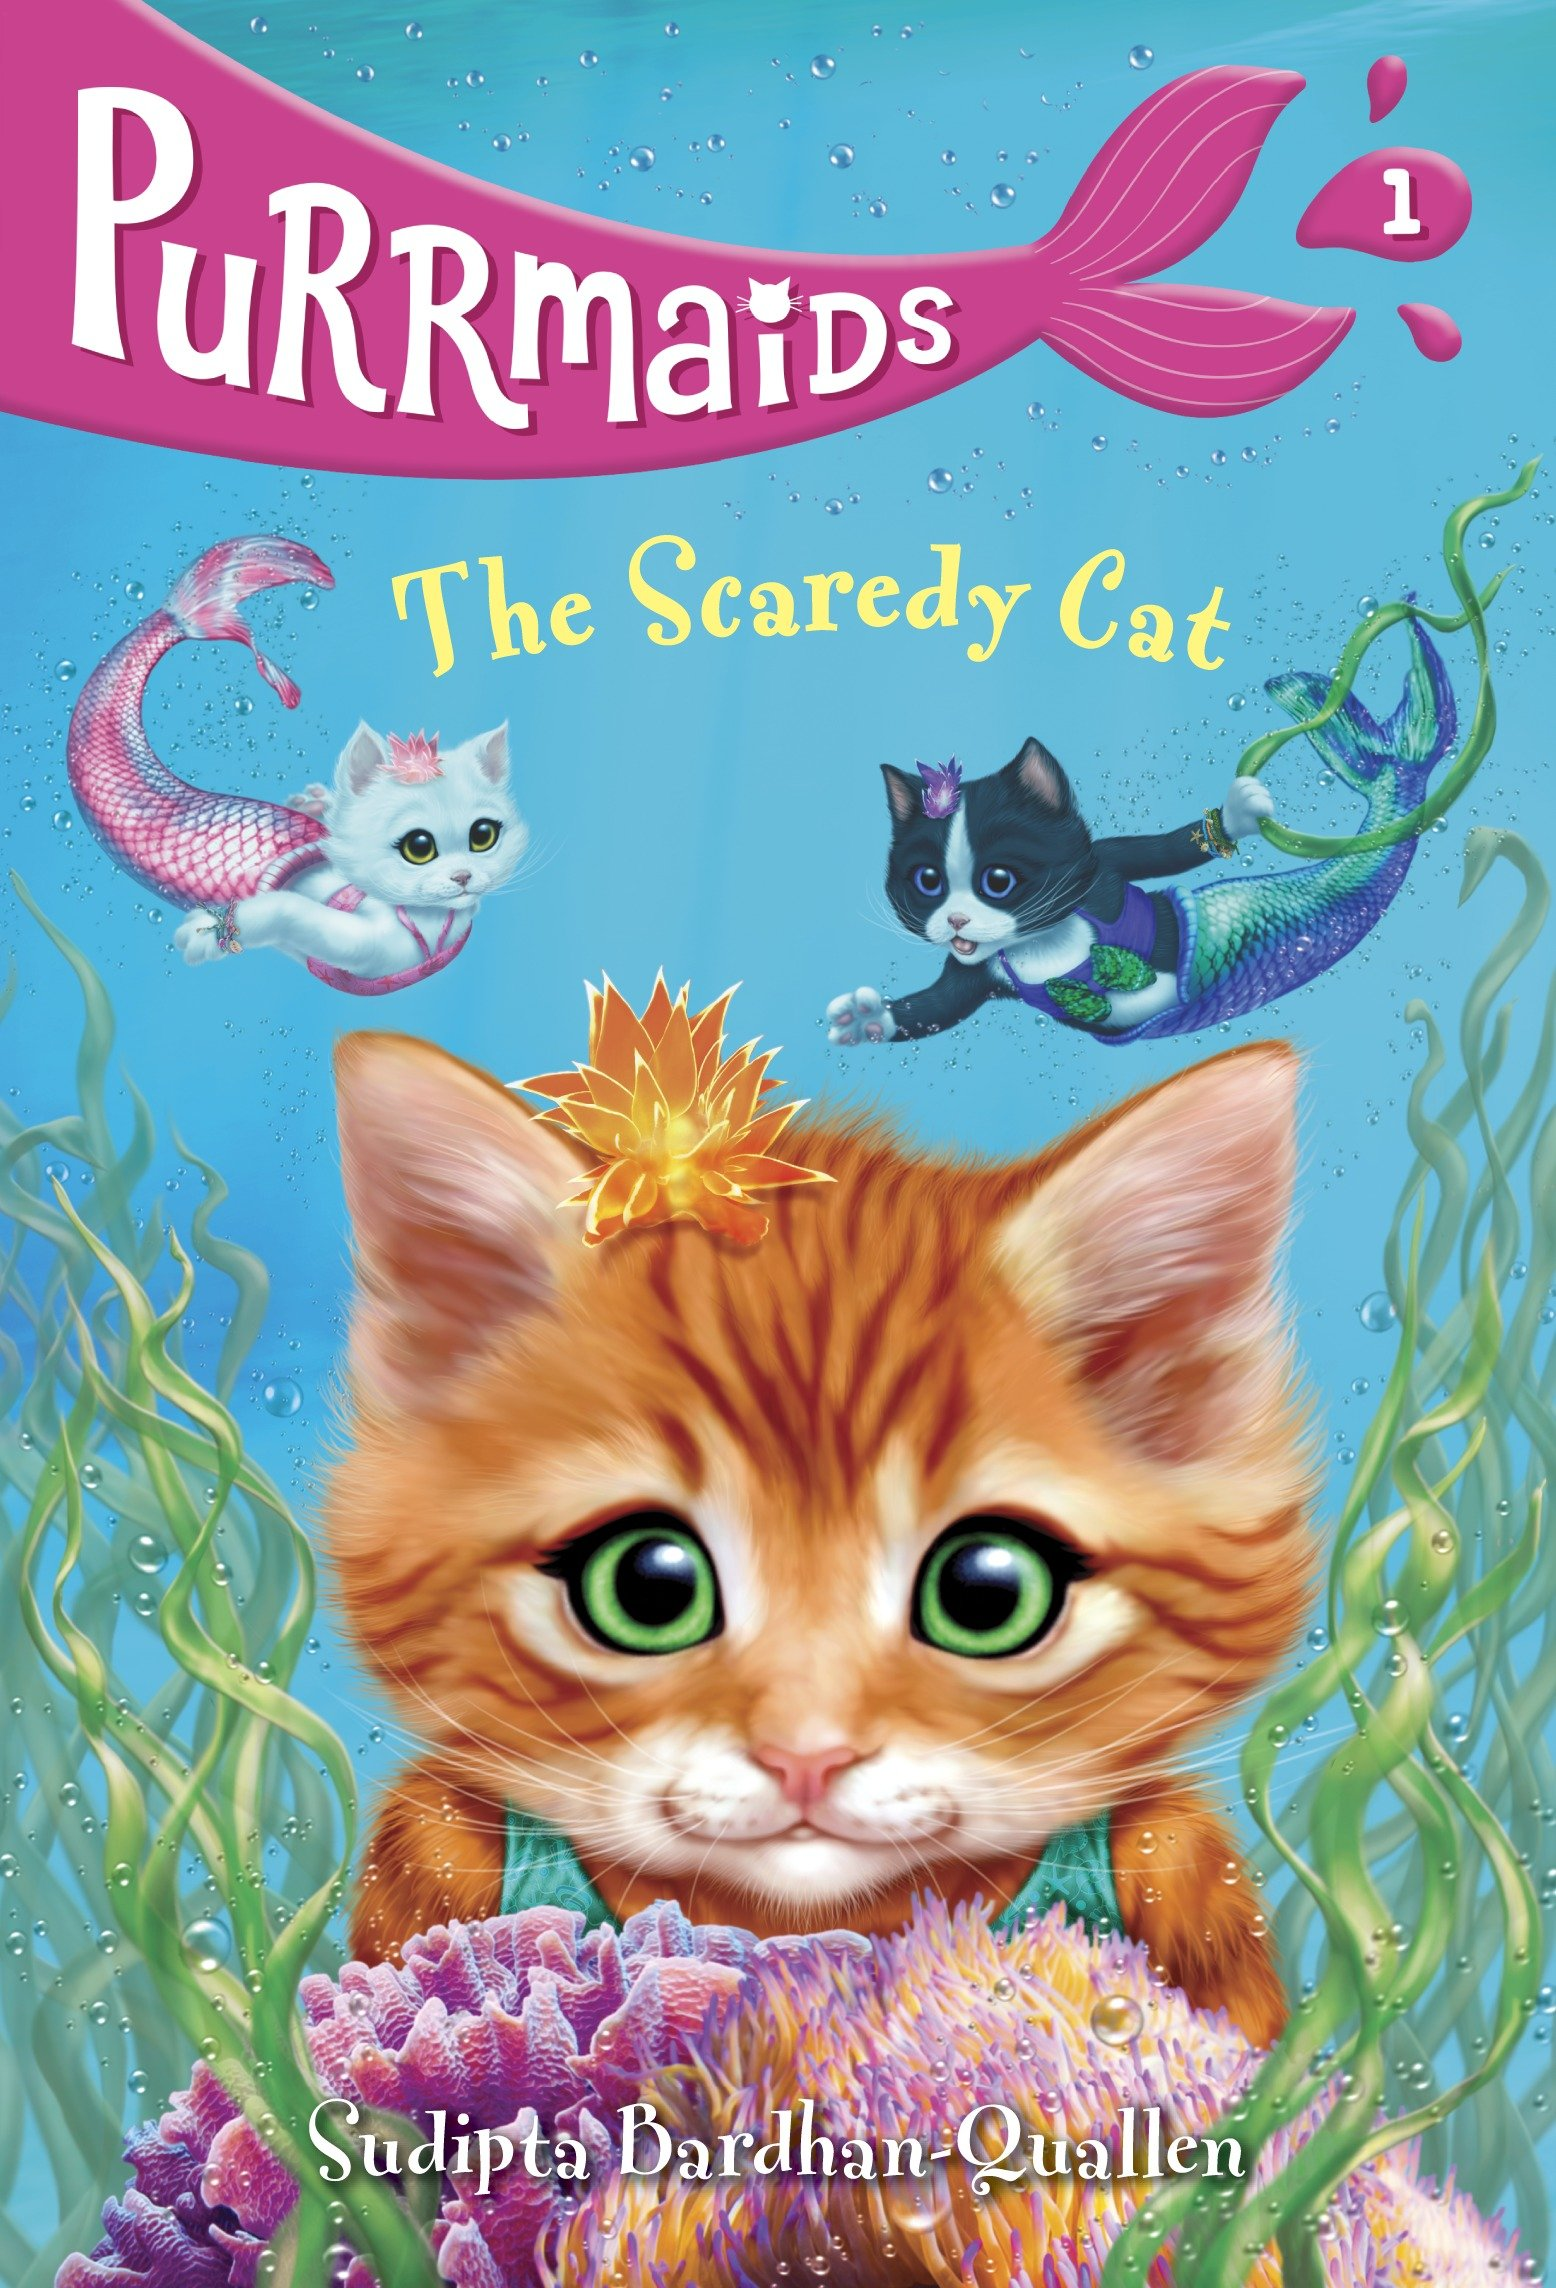 Cover Image of Purrmaids #1: The Scaredy Cat